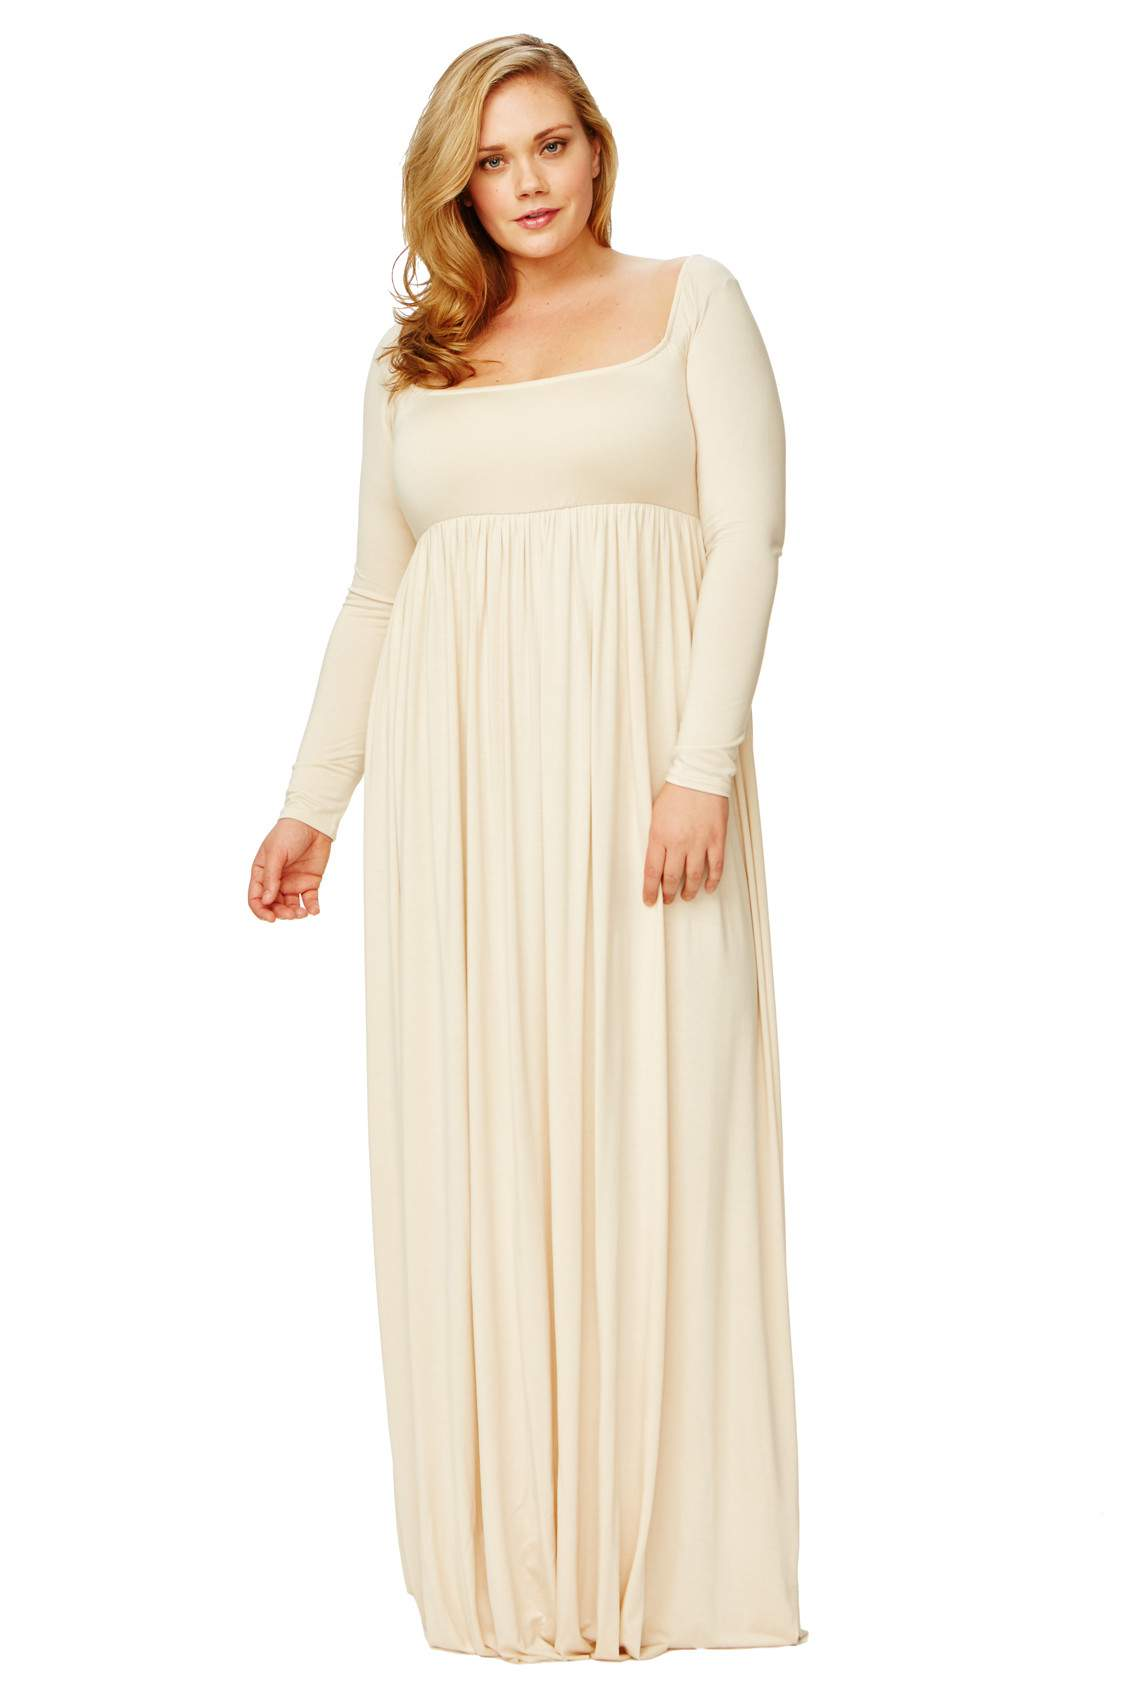 Brunching Around - 10 Great Brunch Worthy Plus Size Dresses